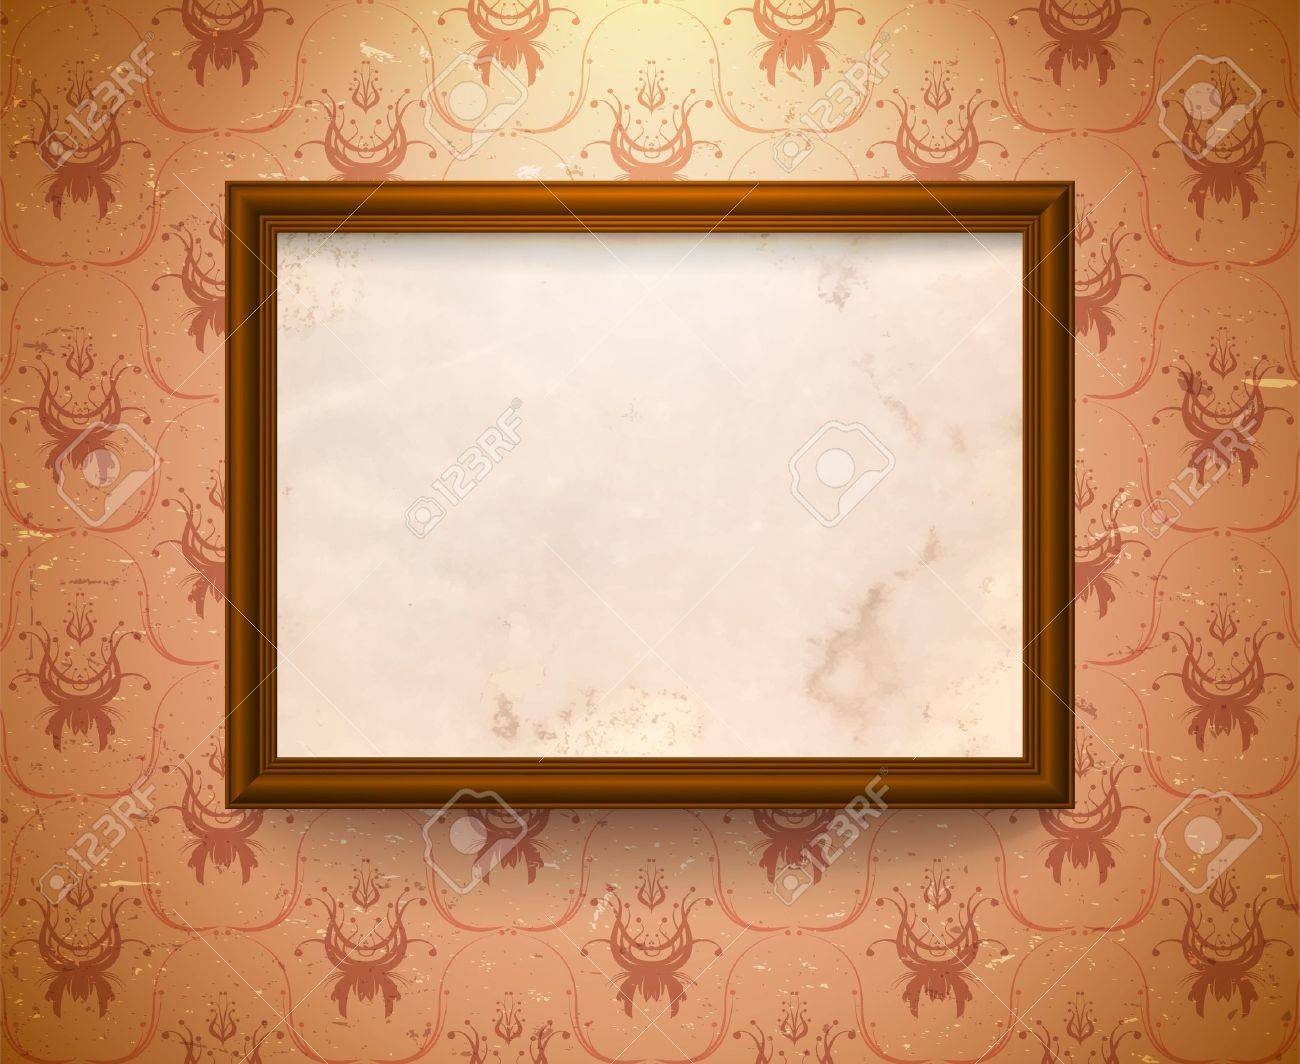 Vintage frame on the wall with aged floral wallpaper Stock Vector - 13781806